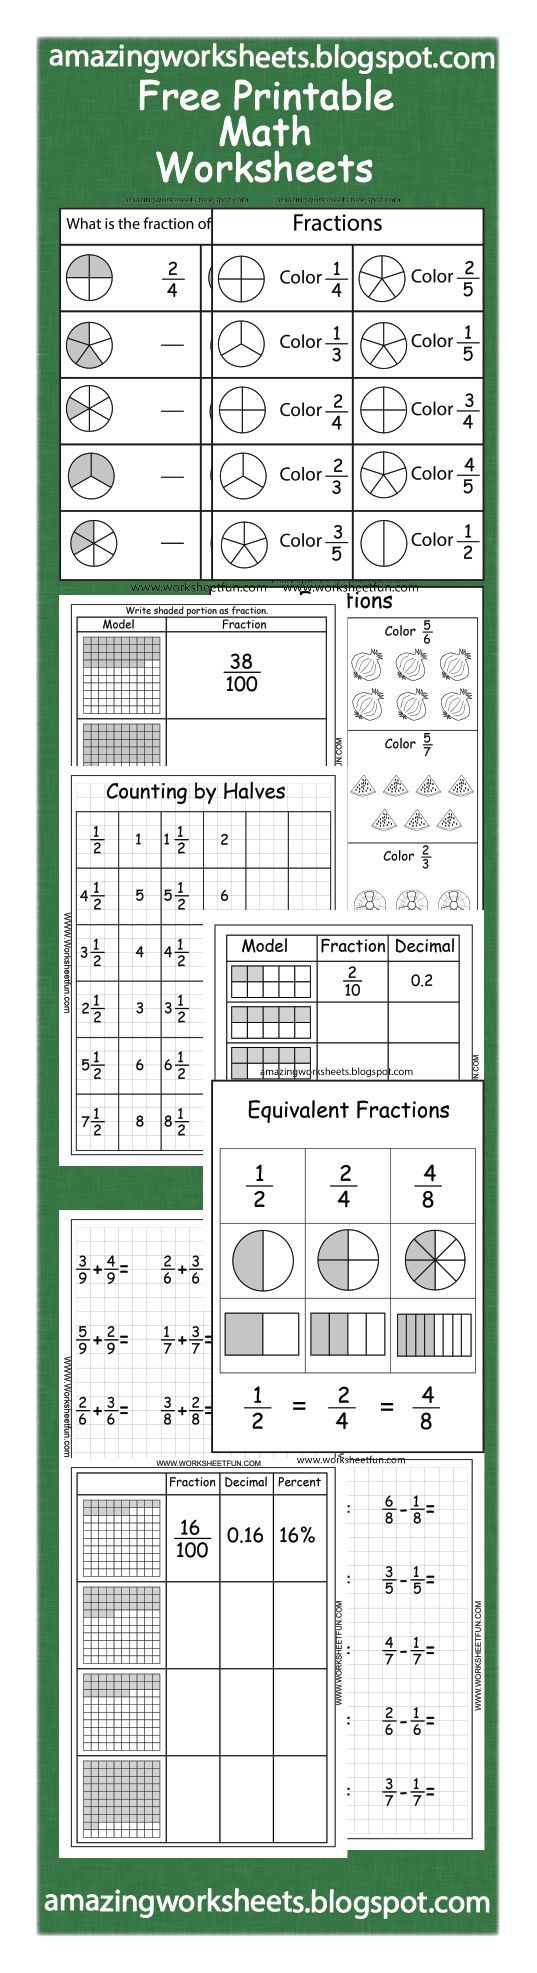 Free Printable Fractions Worksheets